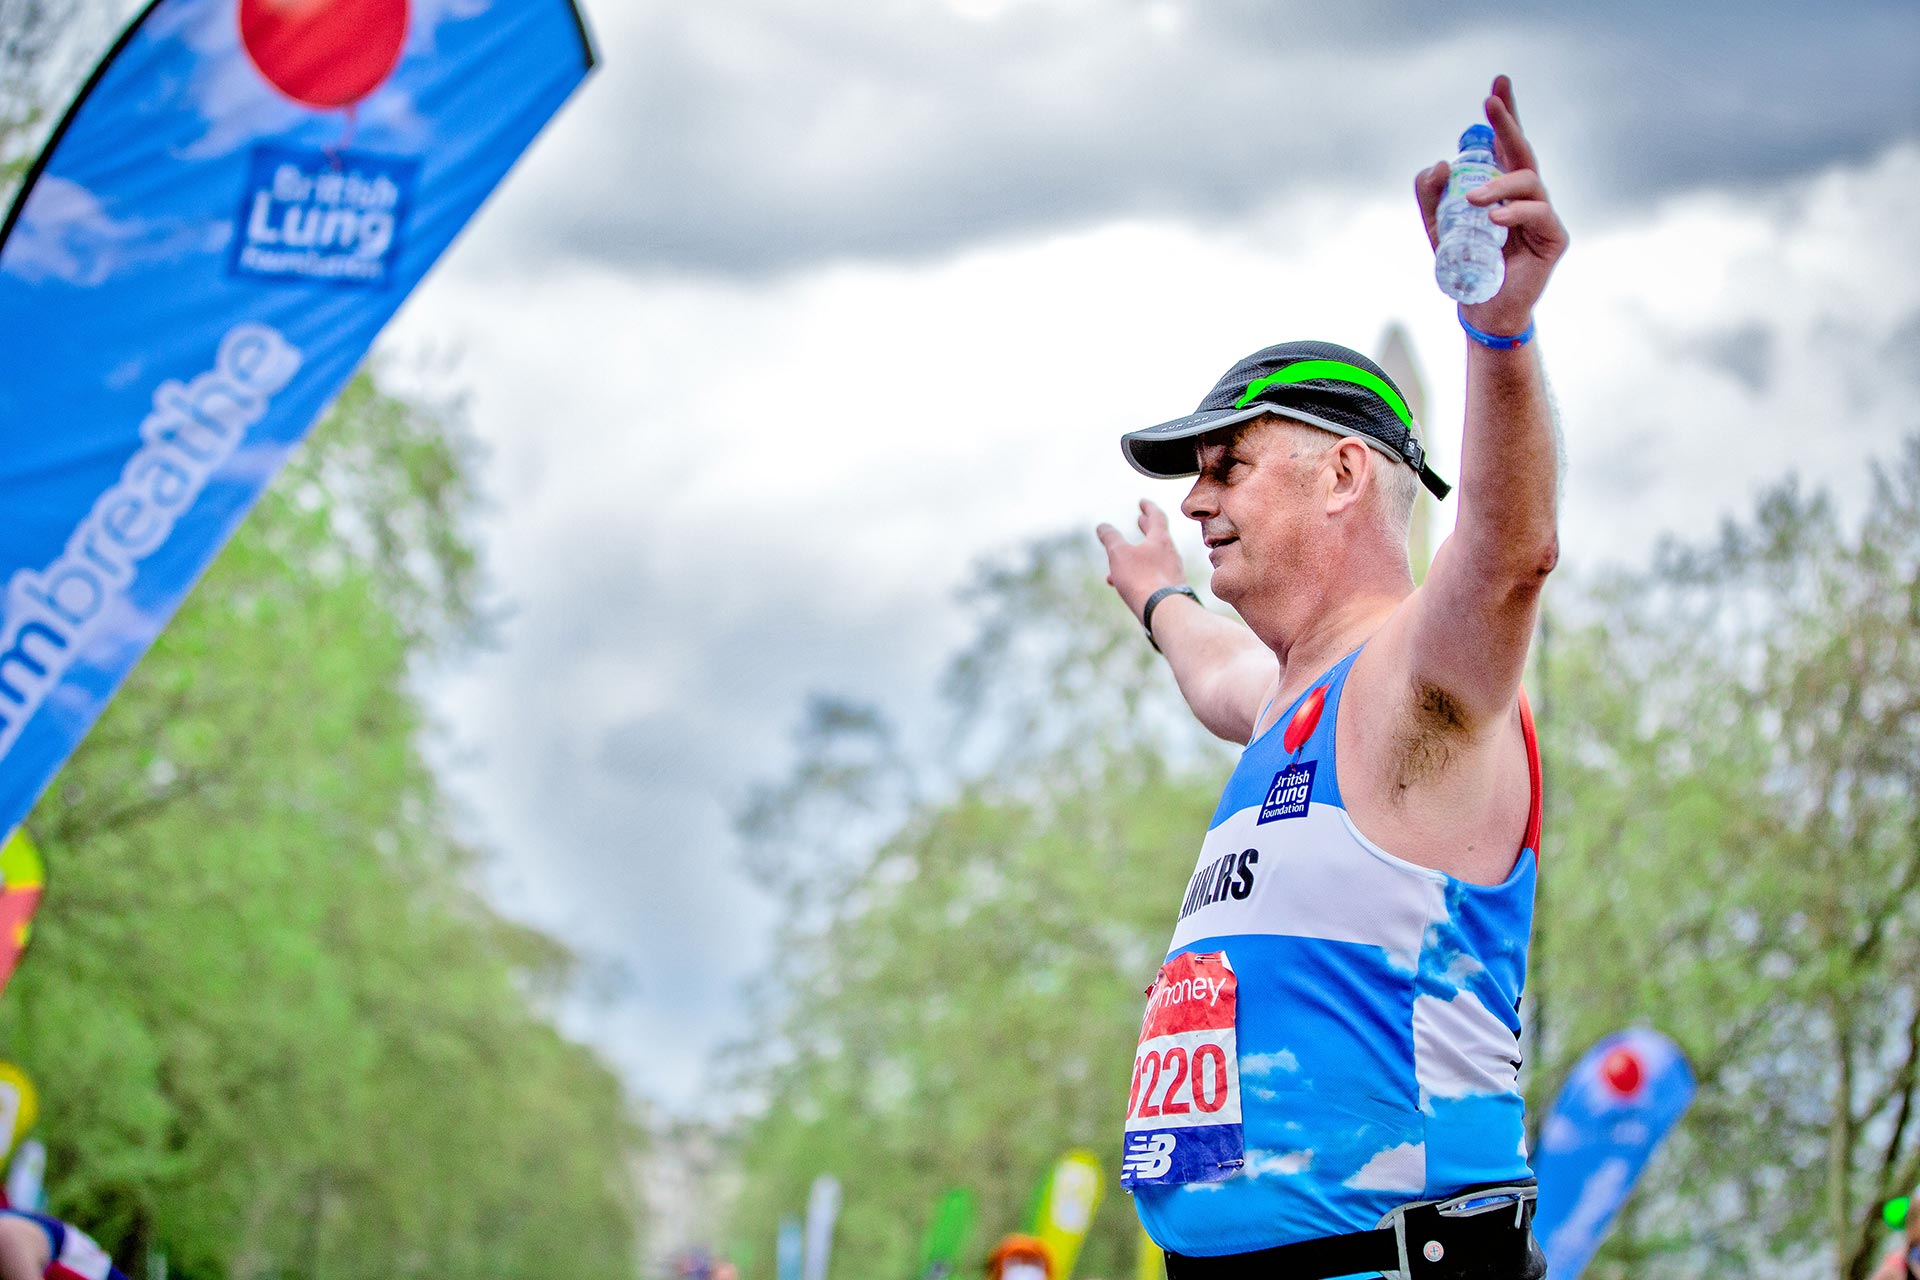 The-Virgin-London-Marathon-2018-with-British-Lung-Foundation-©-Brendan-Foster-Photography-595-Edit-Edit-130.jpg